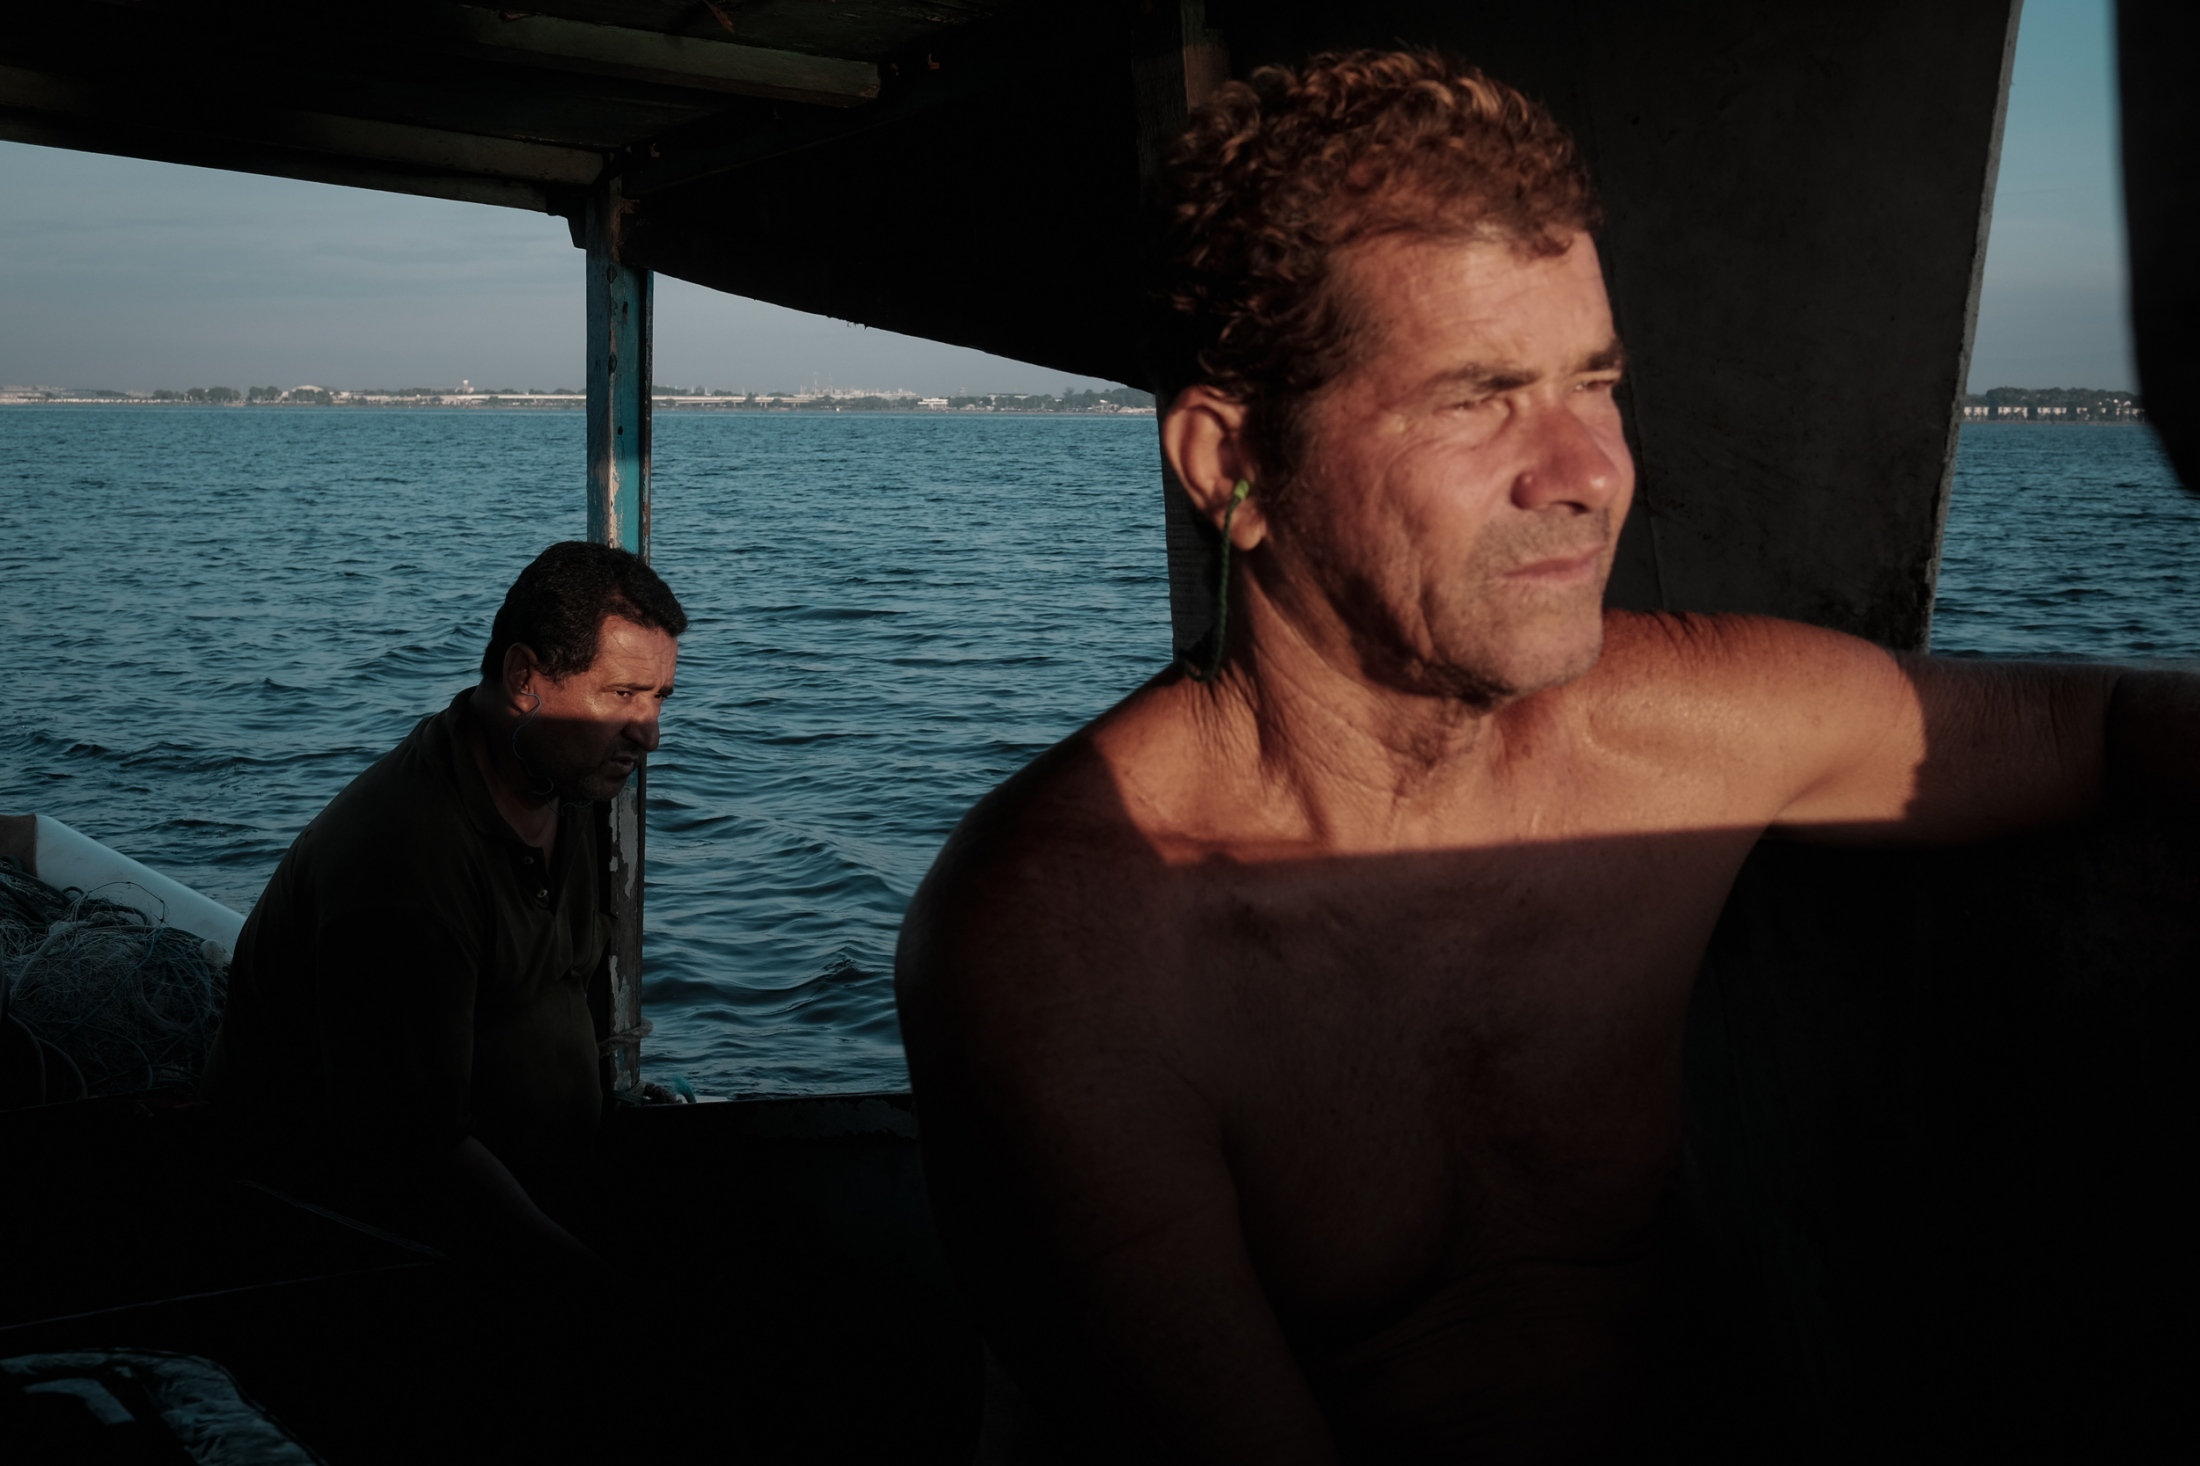 David (l) and Josué (r), two artesanal fishermen from Z-11 head out at dawn to try their luck. Artensanal fishermen use nets and ancient methods to fish in the once-bountiful bay, but their livelhoods have been under increasing strain for decades.